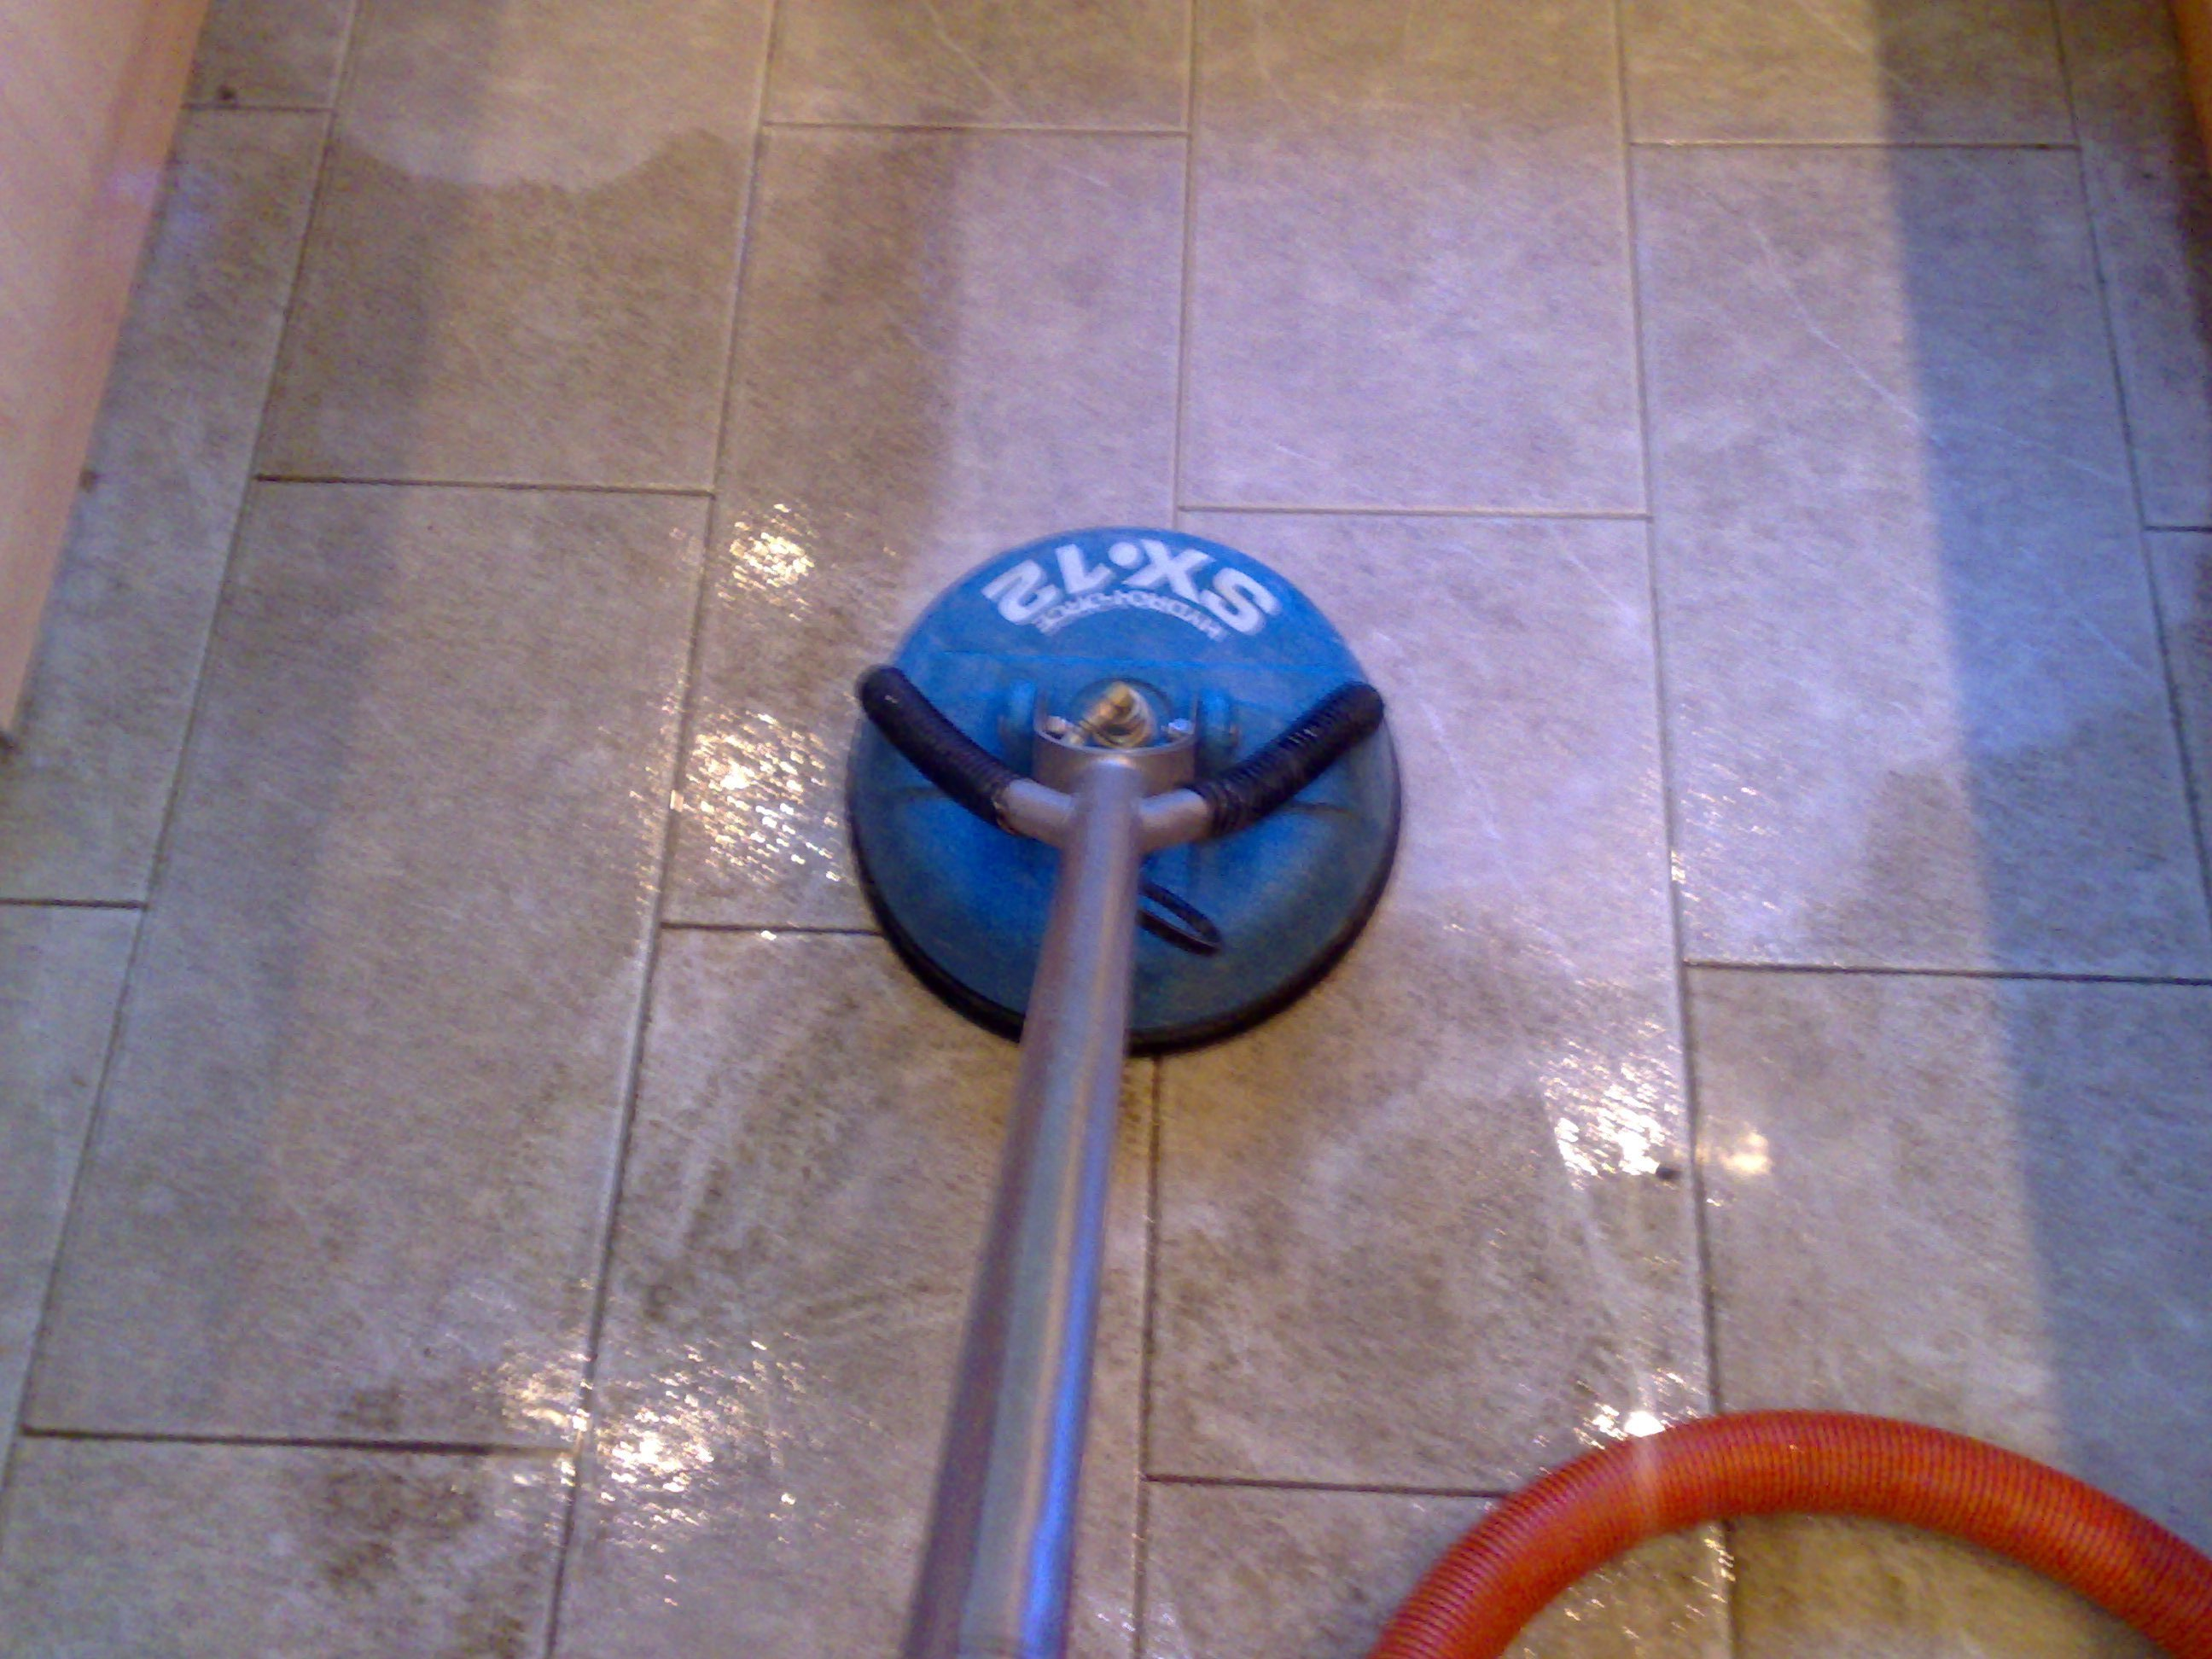 Tile and grout cleaning tile and grout cleaning dailygadgetfo Images